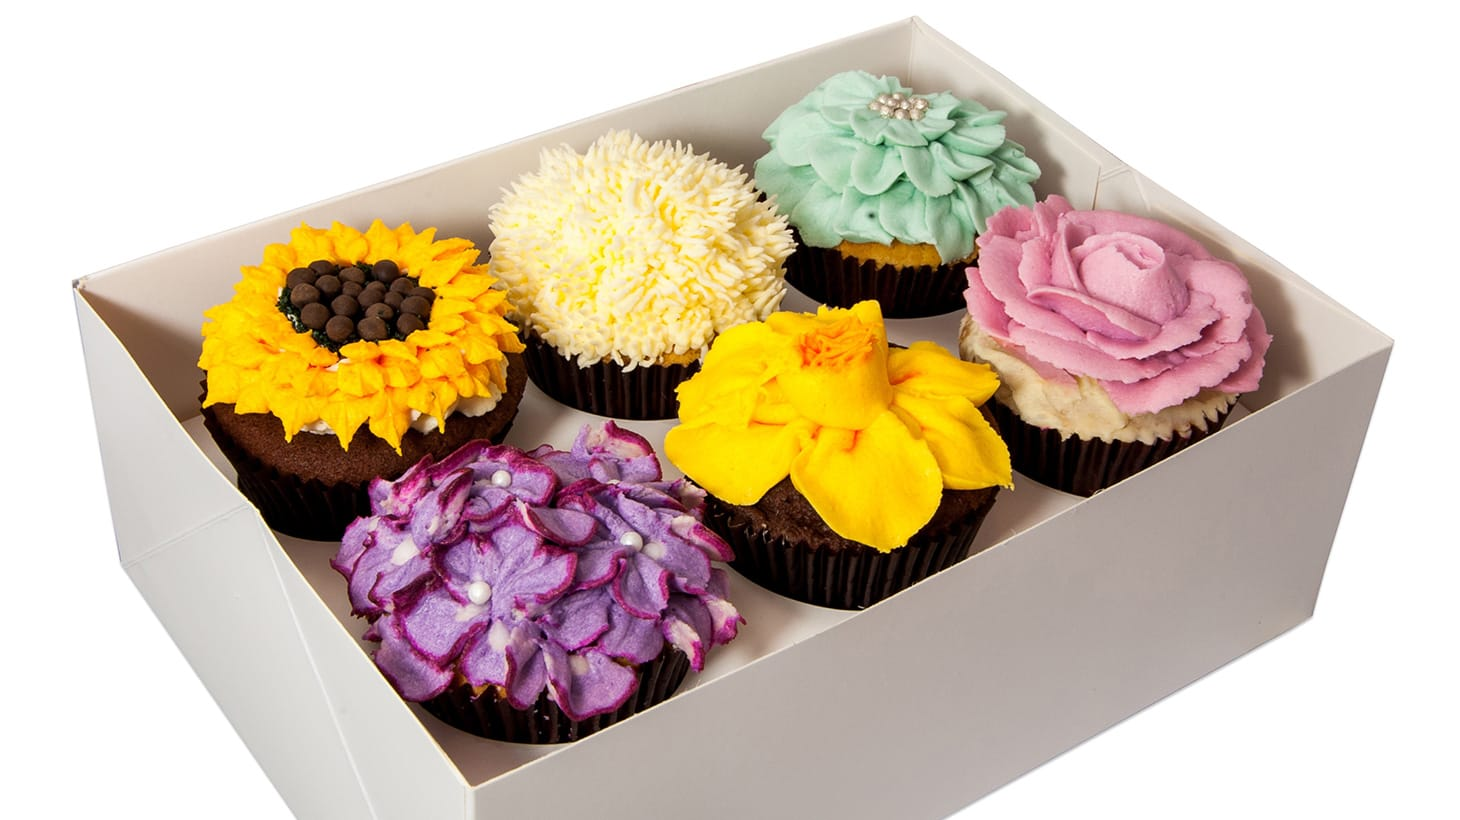 Save up to 61% on a Two-Hour Cupcake Decorating Class - Upgrade to Bring a Friend! The Classic Cupcake Co. Mosman